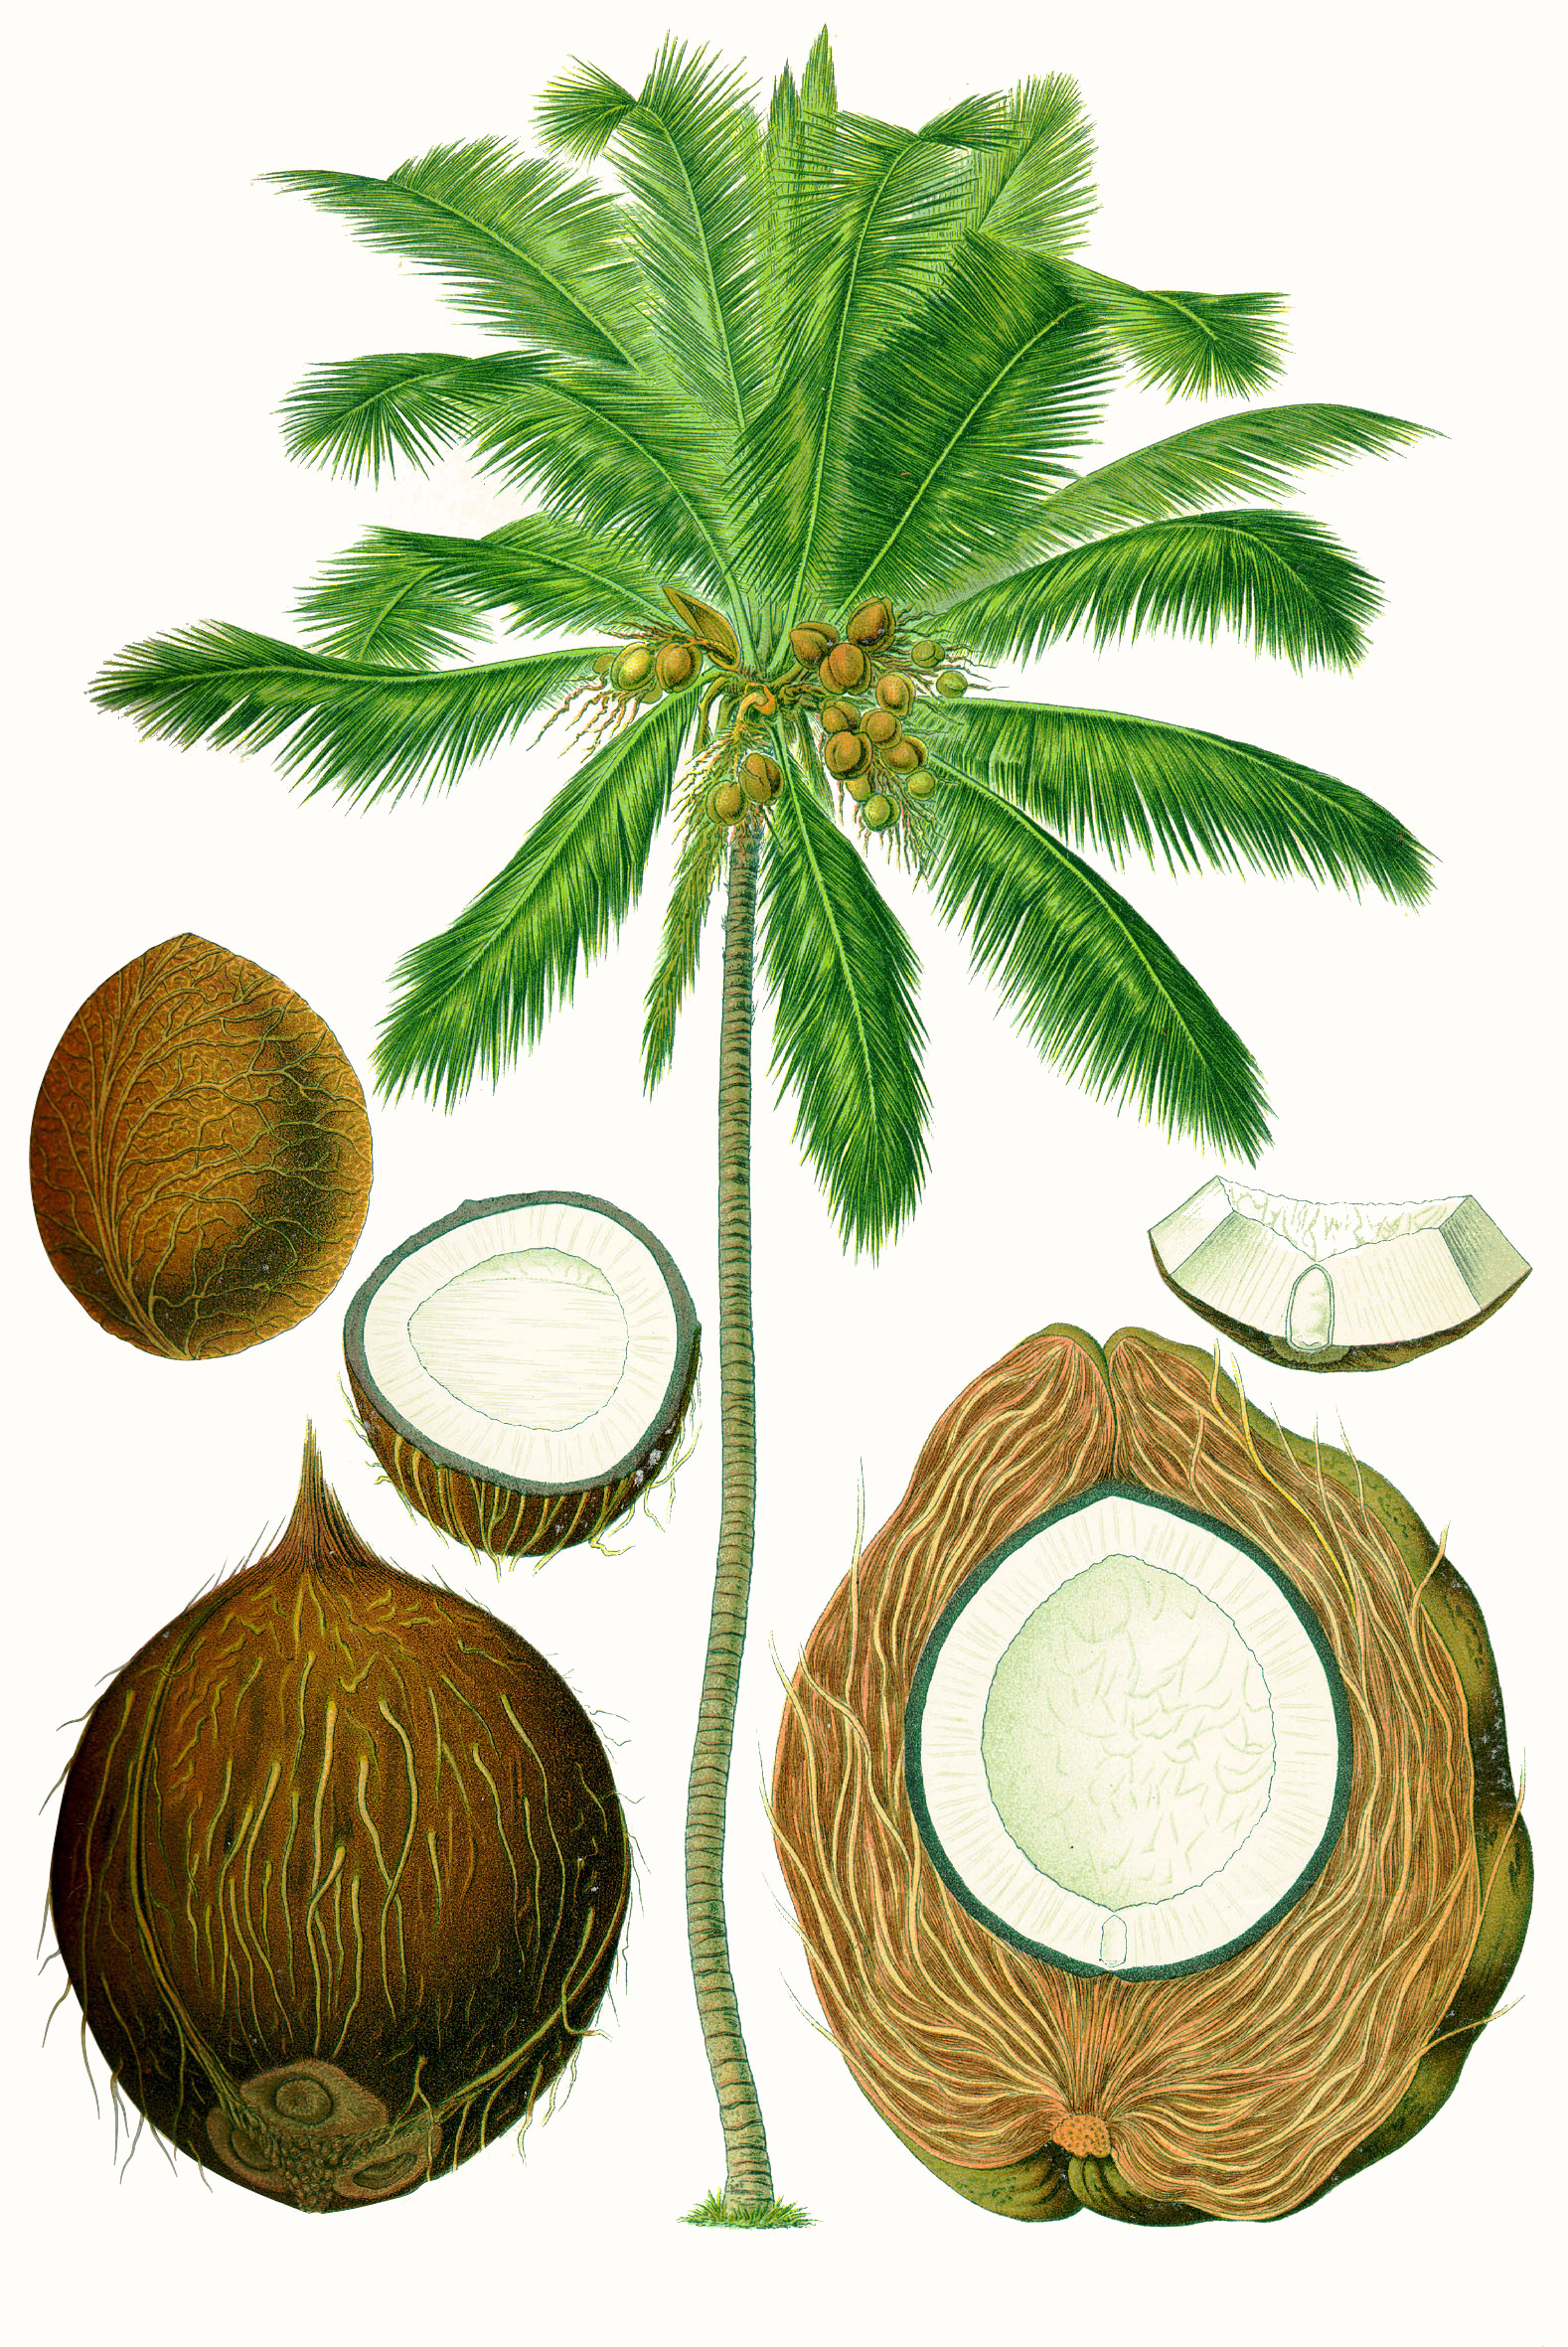 Coconut - Wikipedia